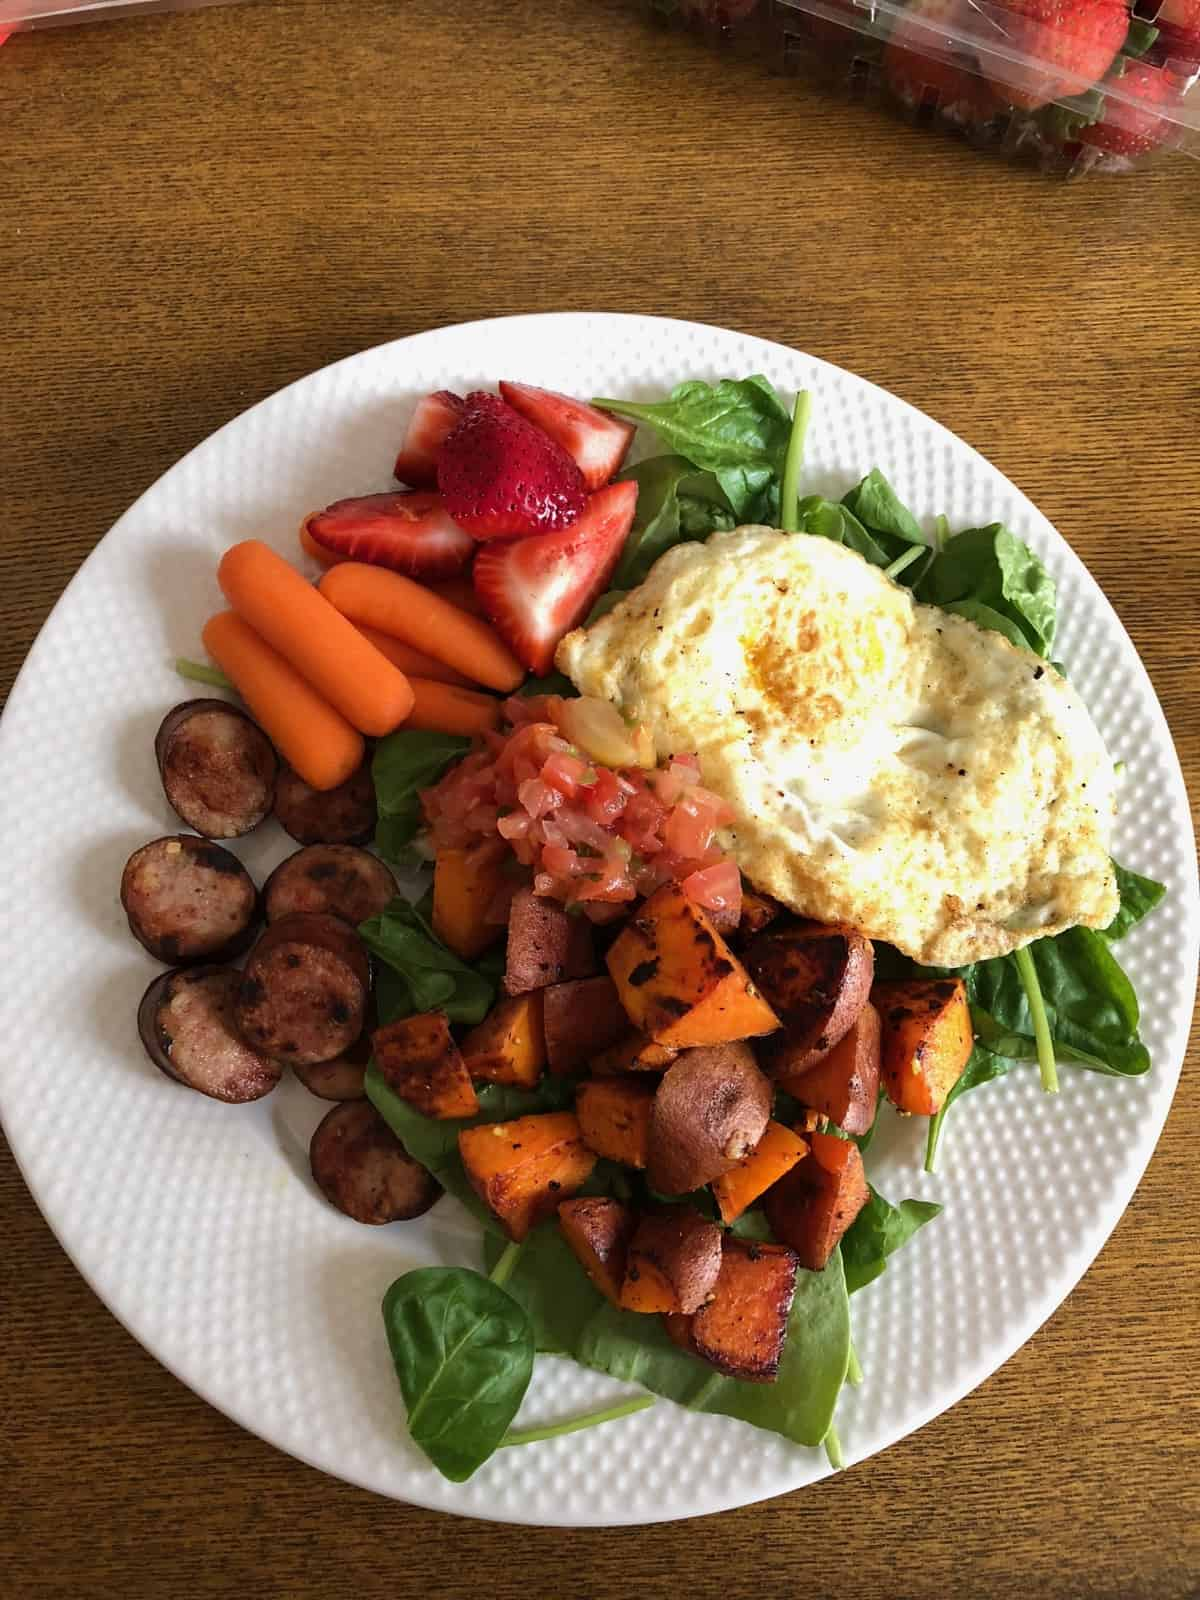 Breakfast plate of greens, fried egg, sweet potato, chicken sausage, carrots, strawberries, and salsa